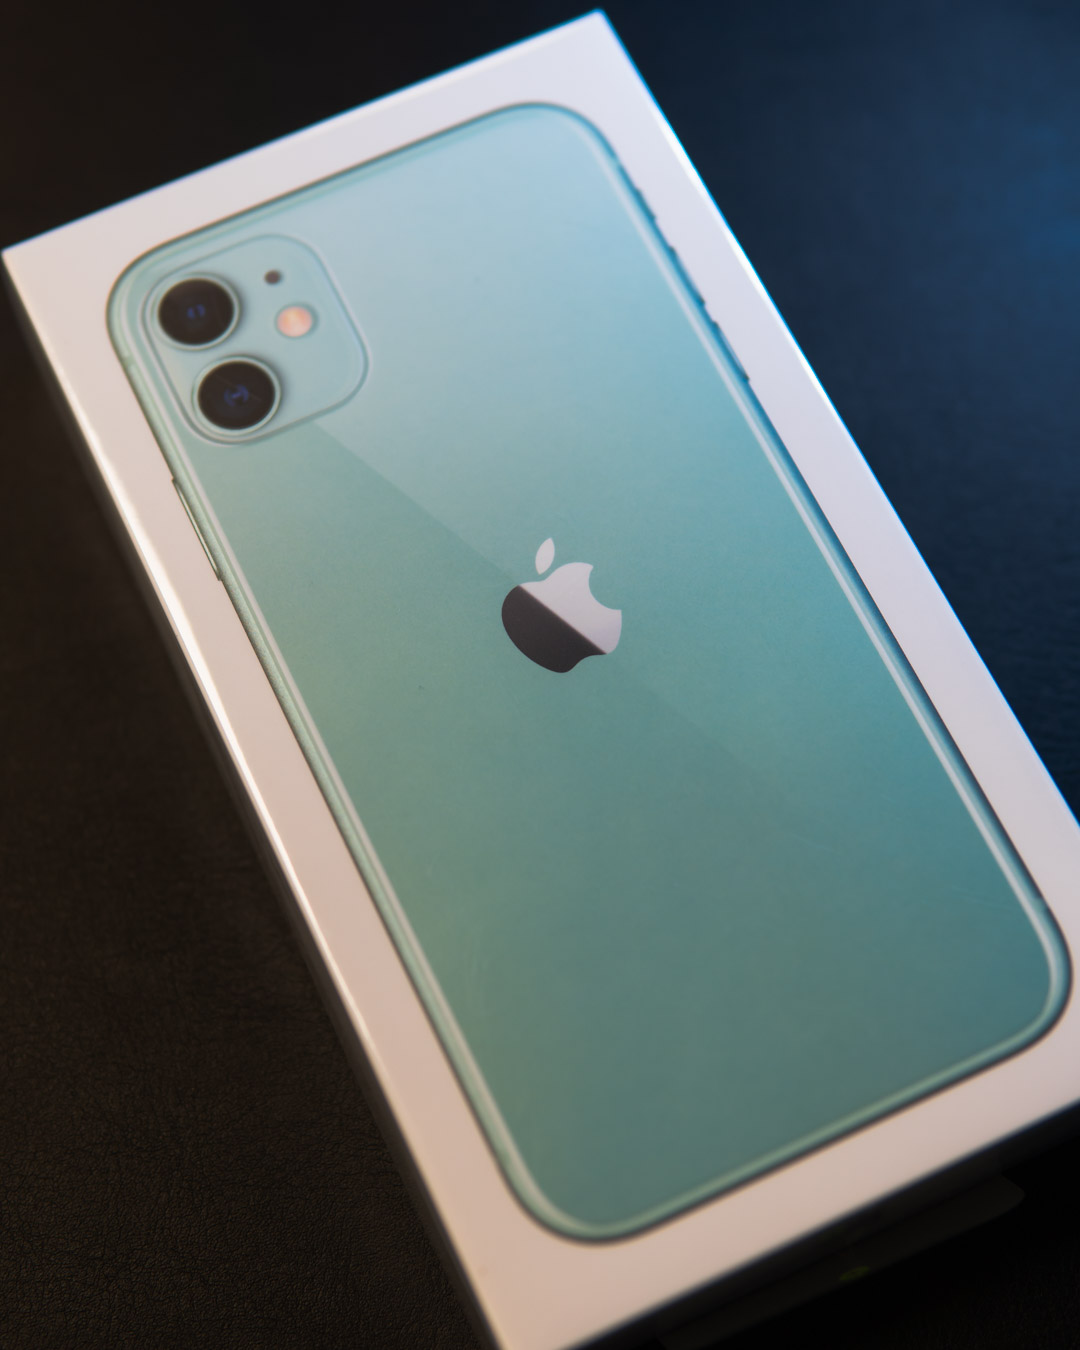 Black Friday Discounted iPhone 11 For Business Users - Green iPhone 11 in box